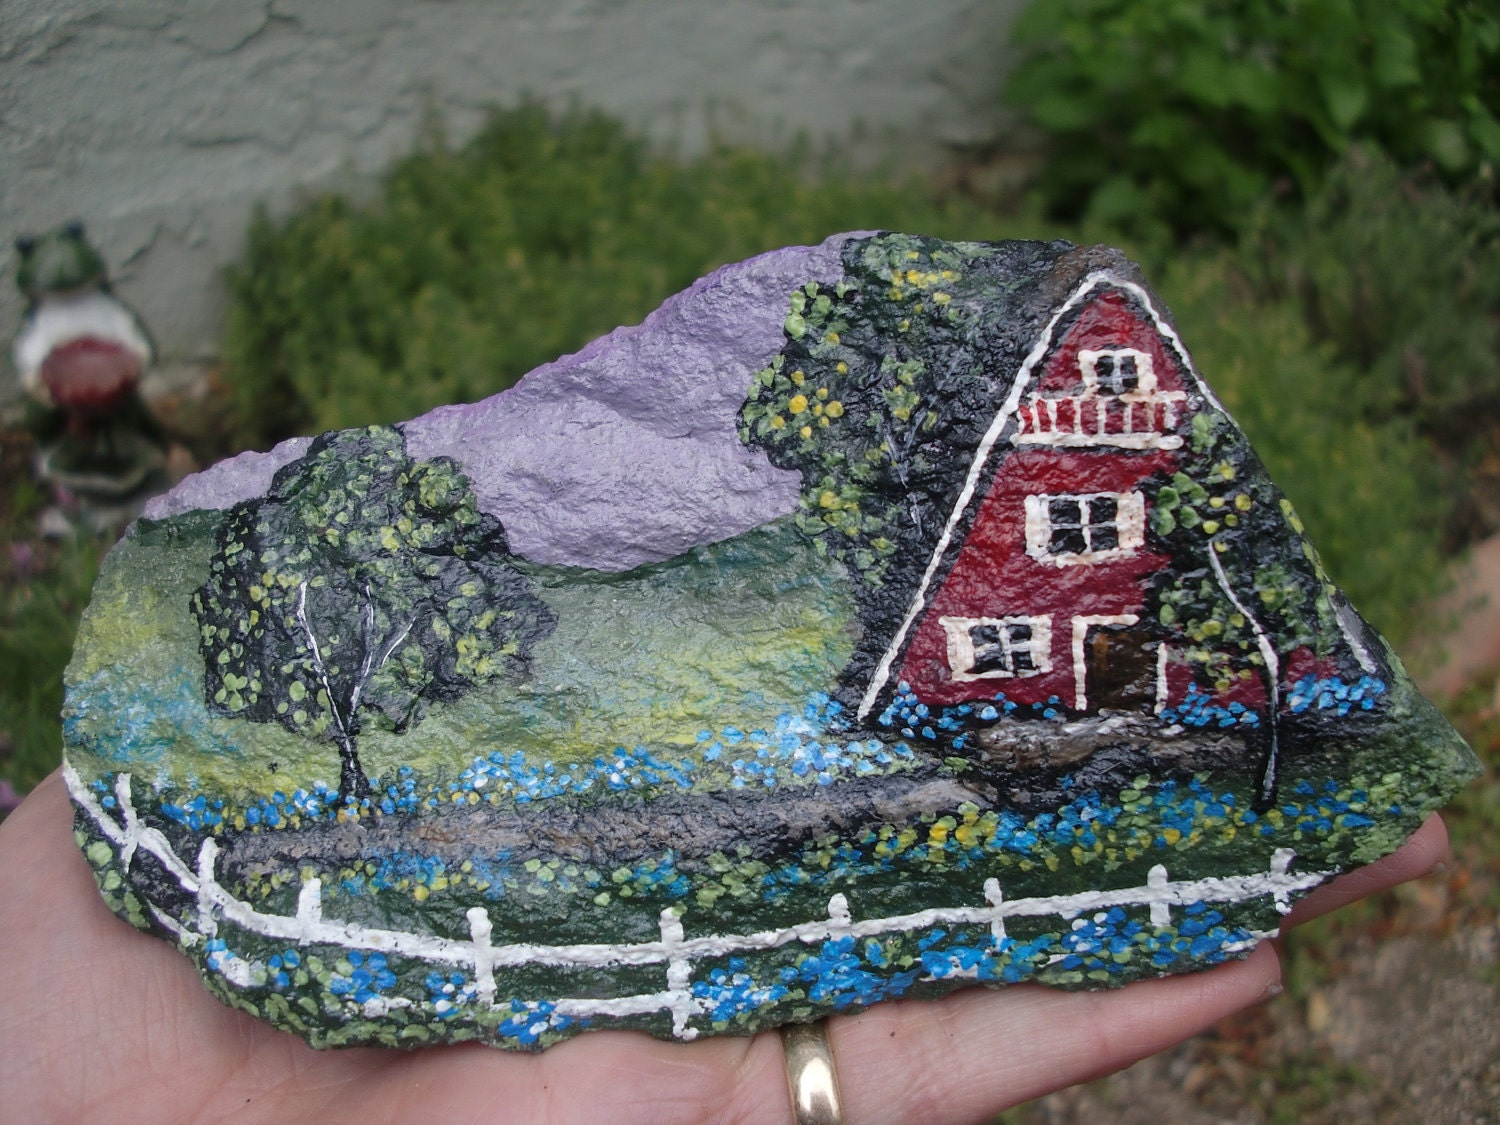 Home for sale hand painted garden art for Rock garden rocks for sale